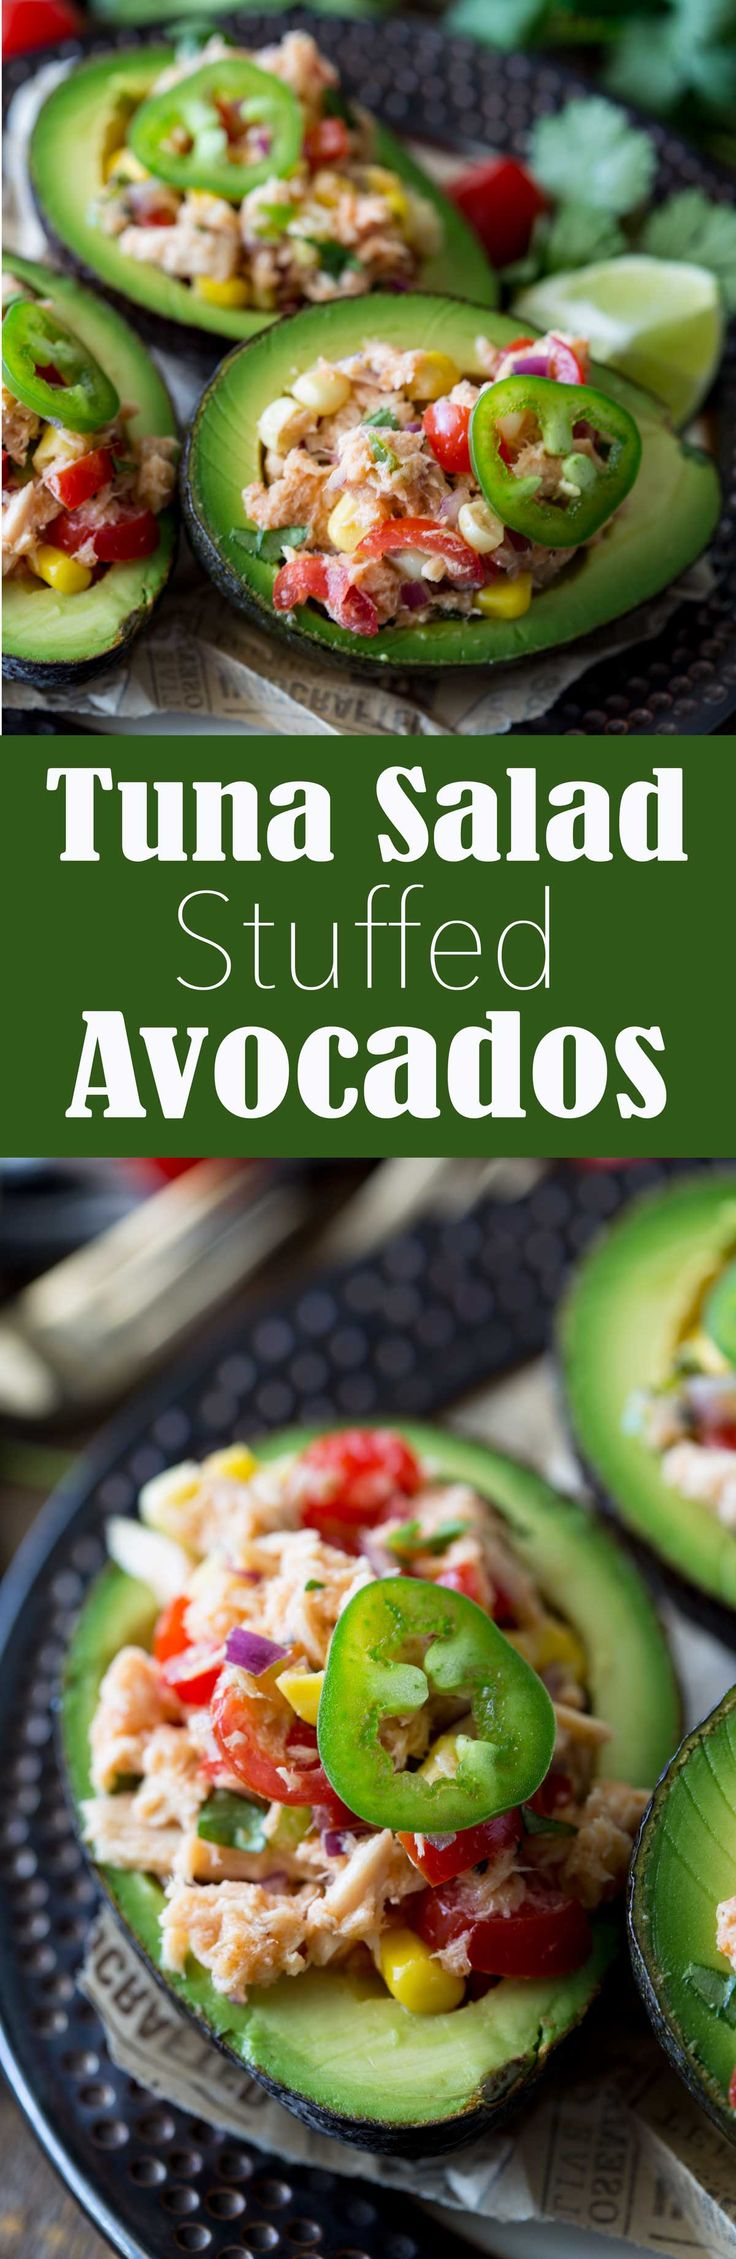 Stuffed avocado, Tuna salad and Tex mex on Pinterest